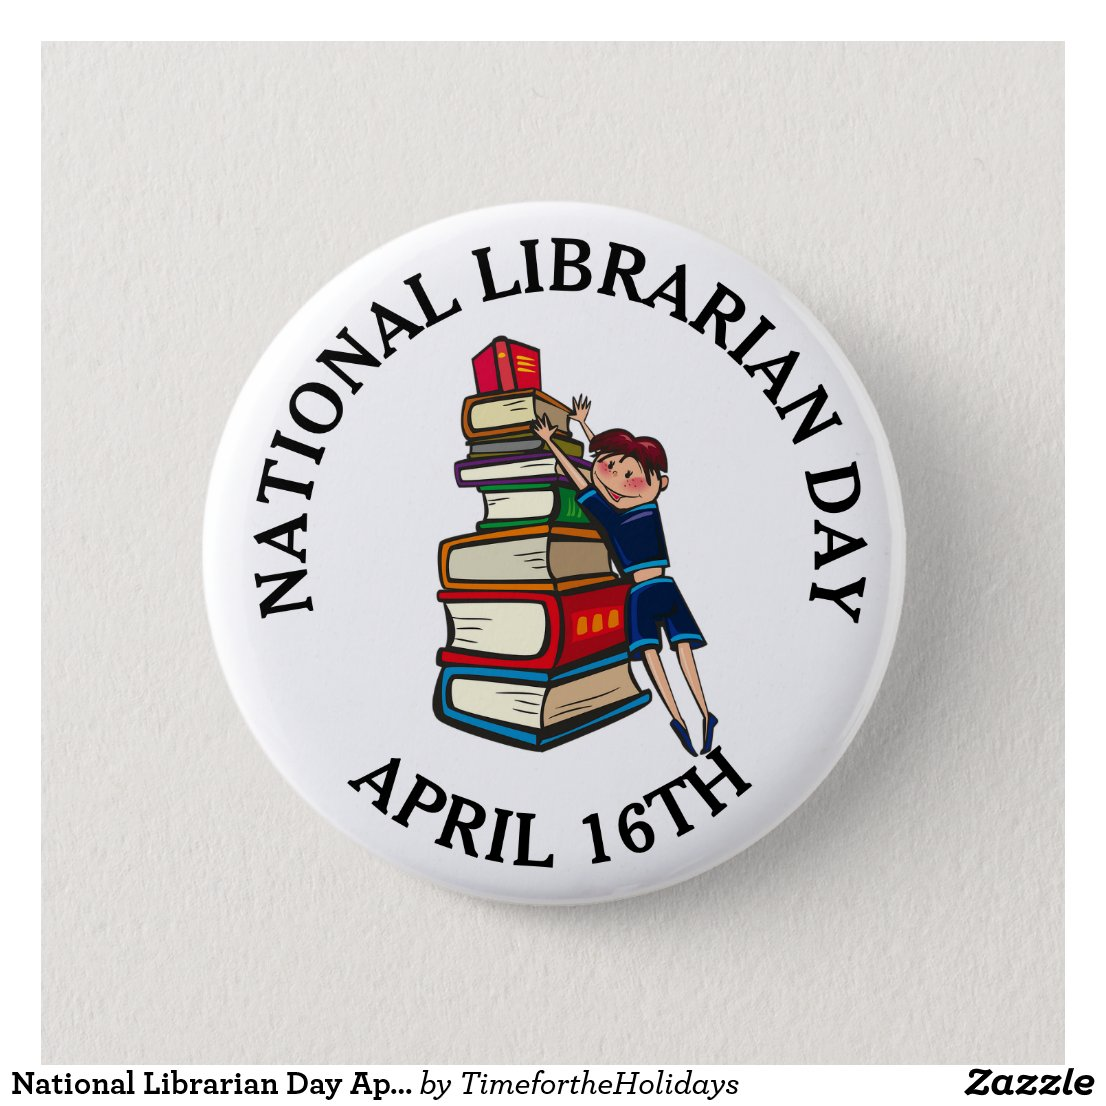 National Librarian Day April 16th button